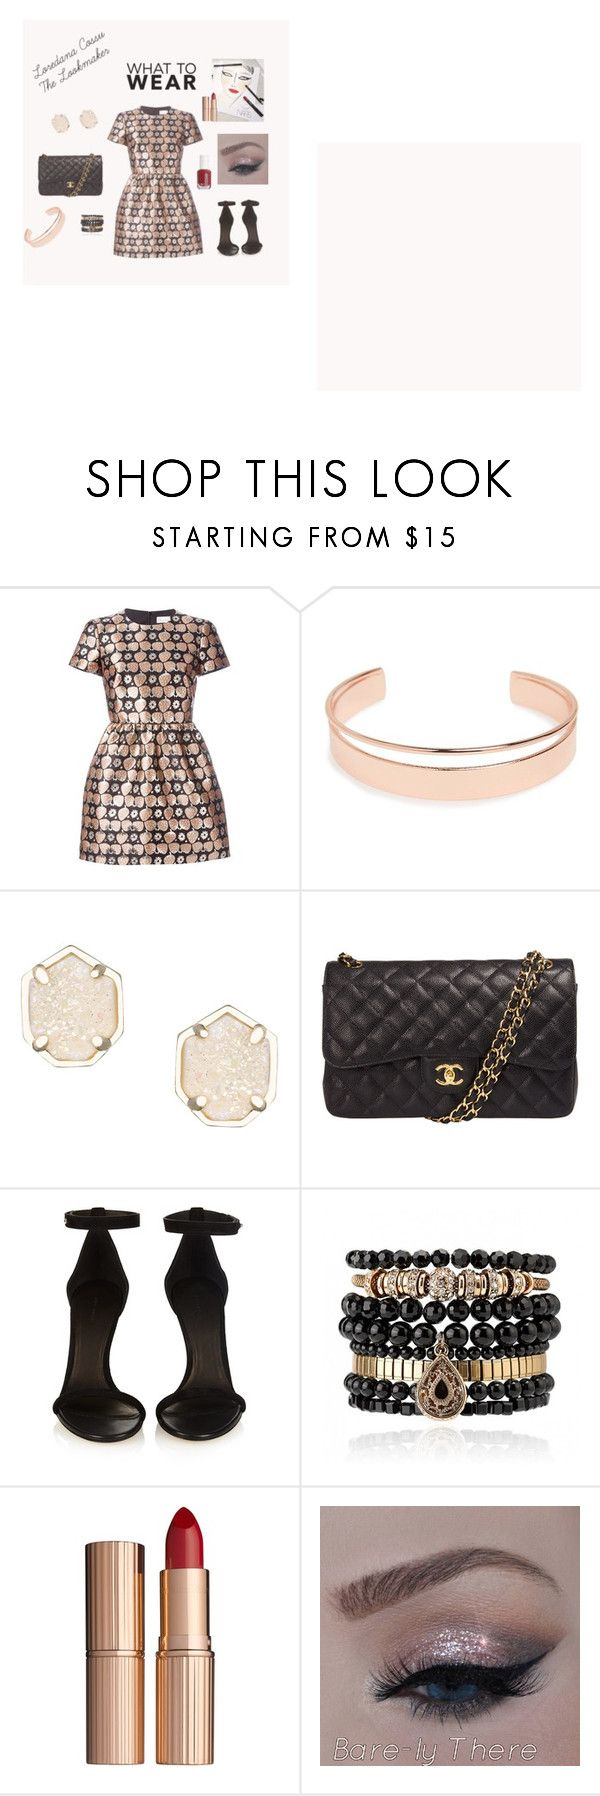 total look by loredanacossu on Polyvore featuring RED Valentino, Isabel Marant, Chanel, Samantha Wills, Kendra Scott, Leith, Charlotte Tilbury, Essie and Creatures Of The Wind